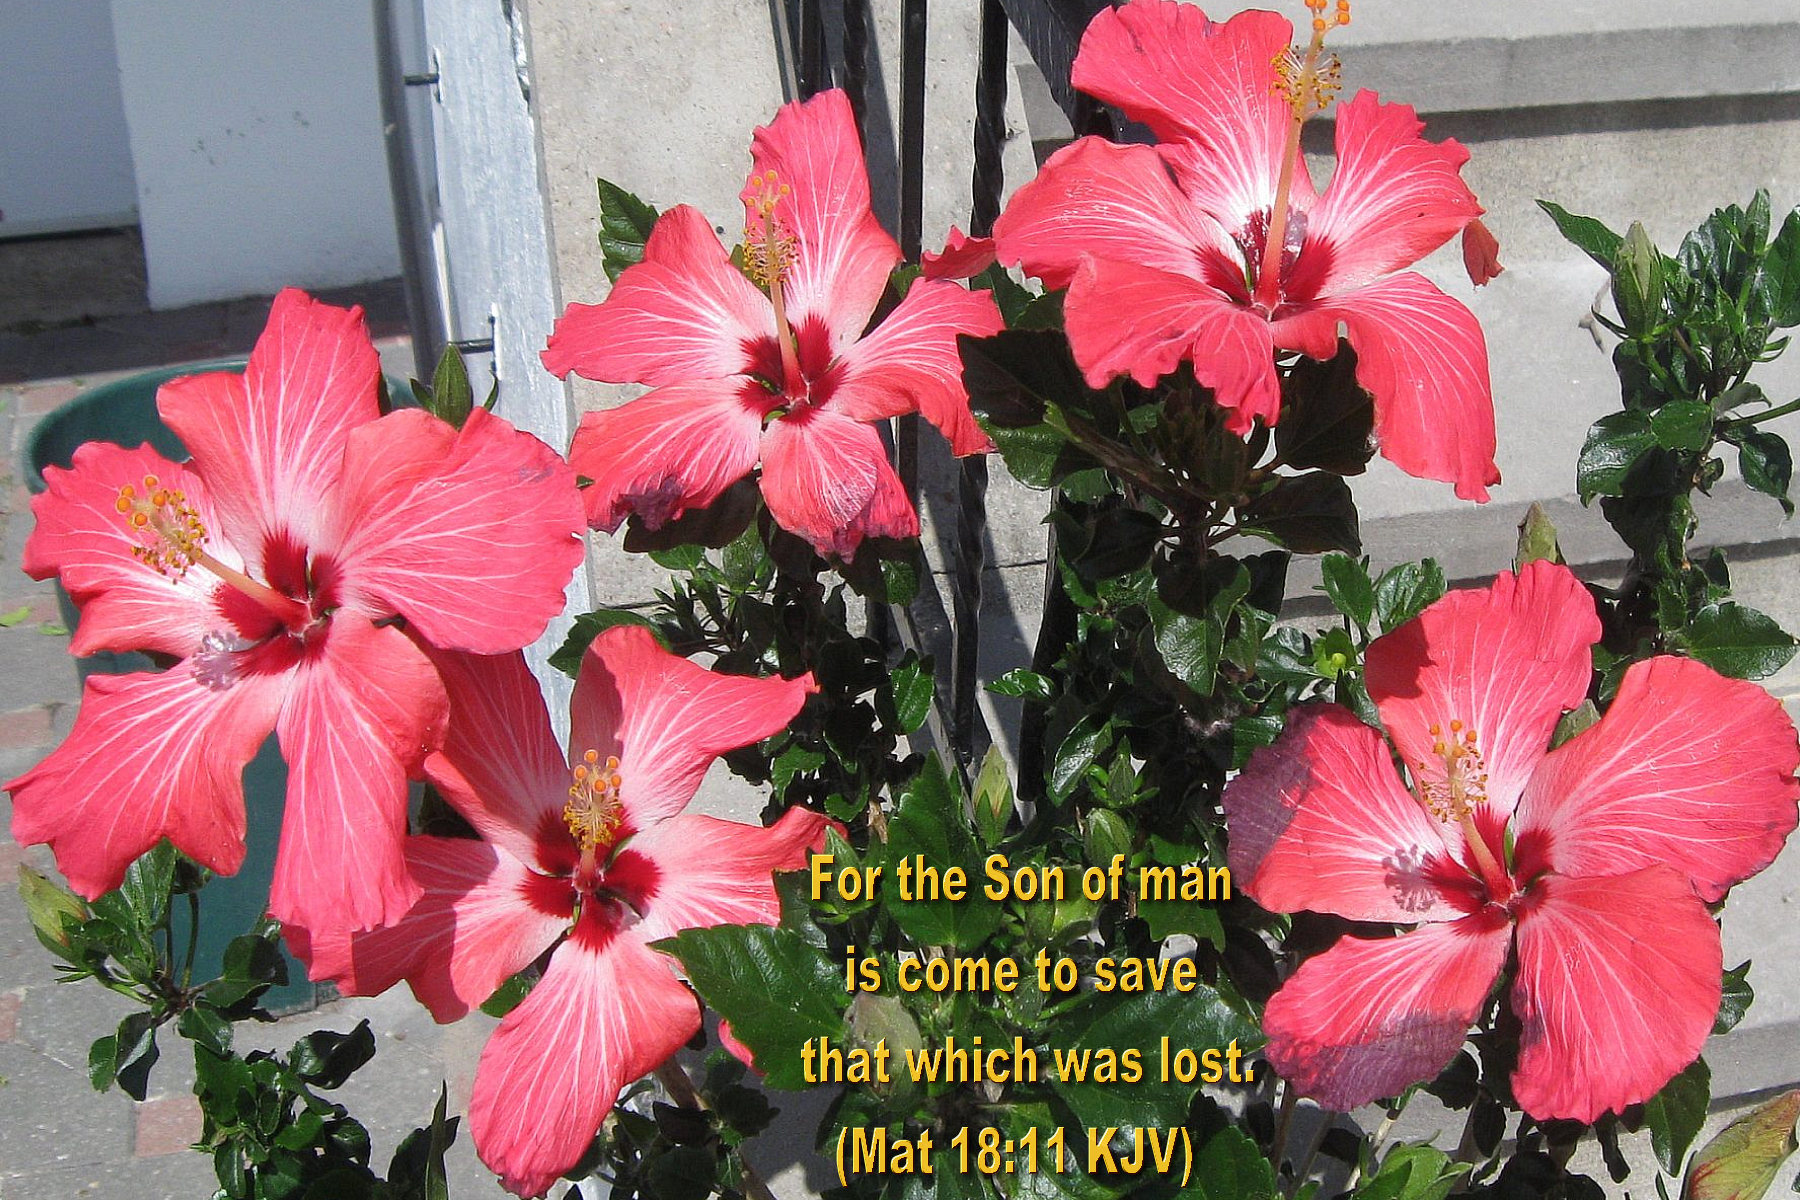 Inspirational Wallpapers Bible Verses Flowers Ii Hot Discussions